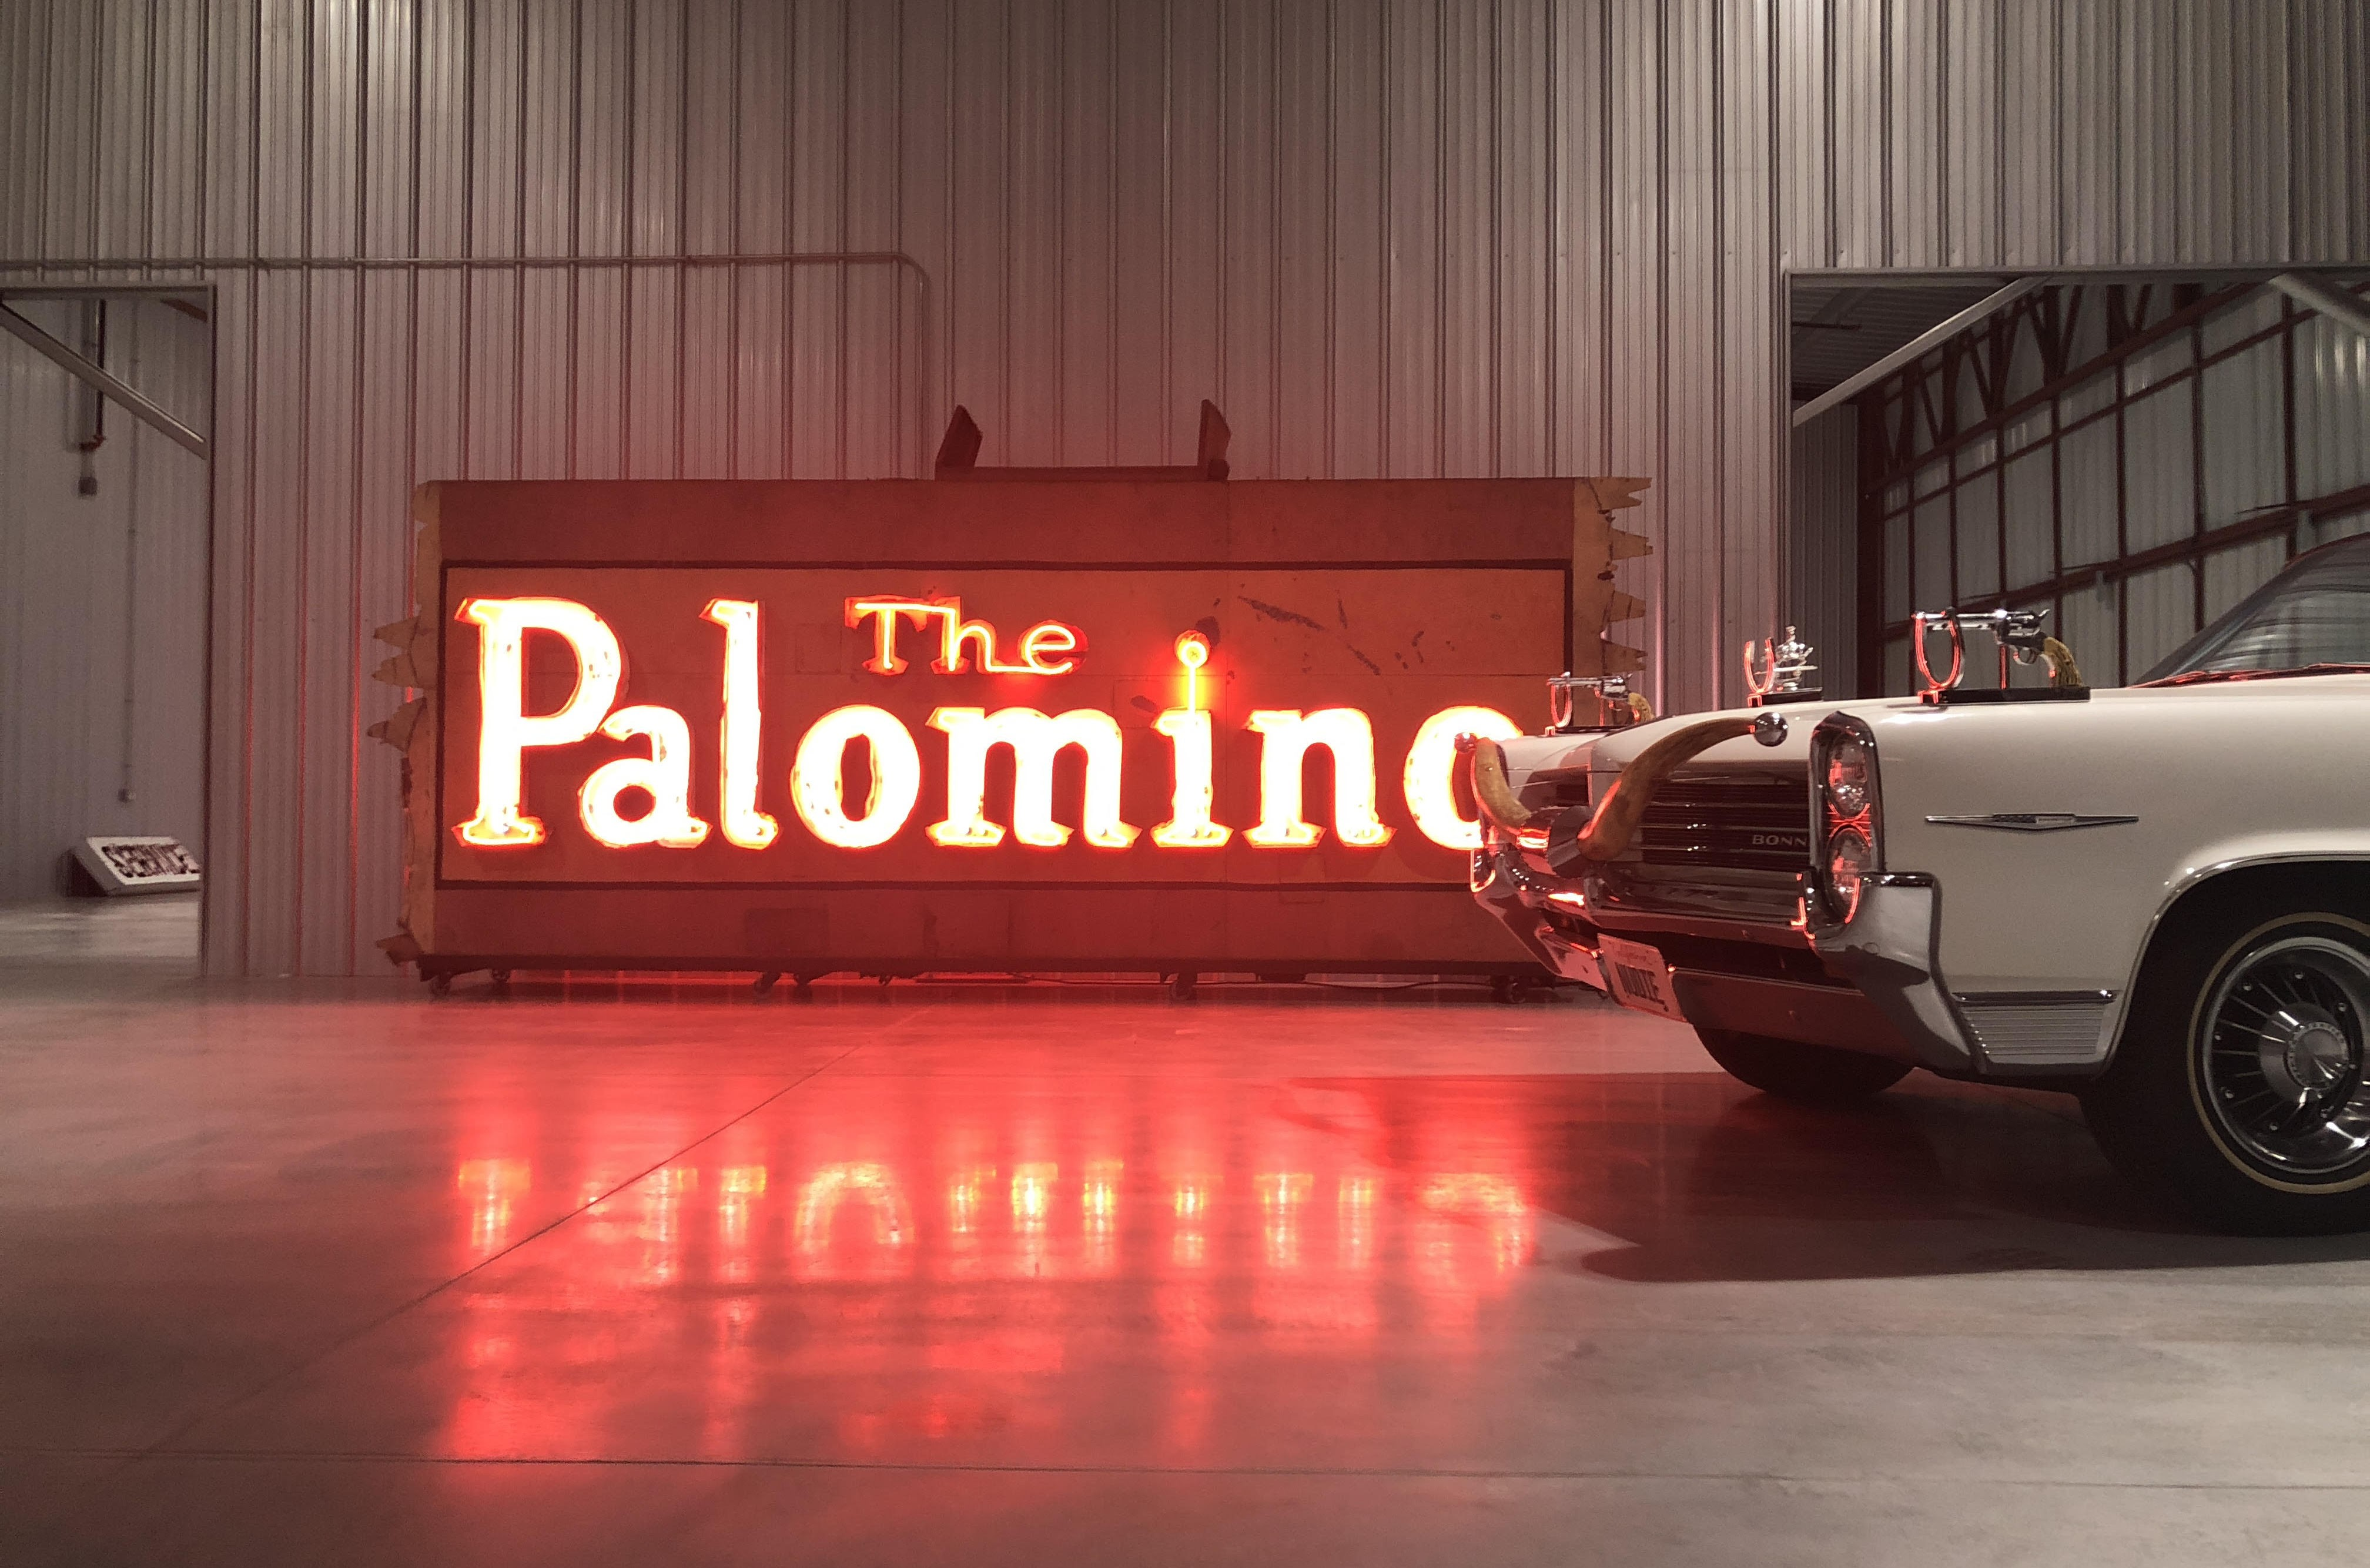 The Palomino sign on display at the Valley Relics Musuem.